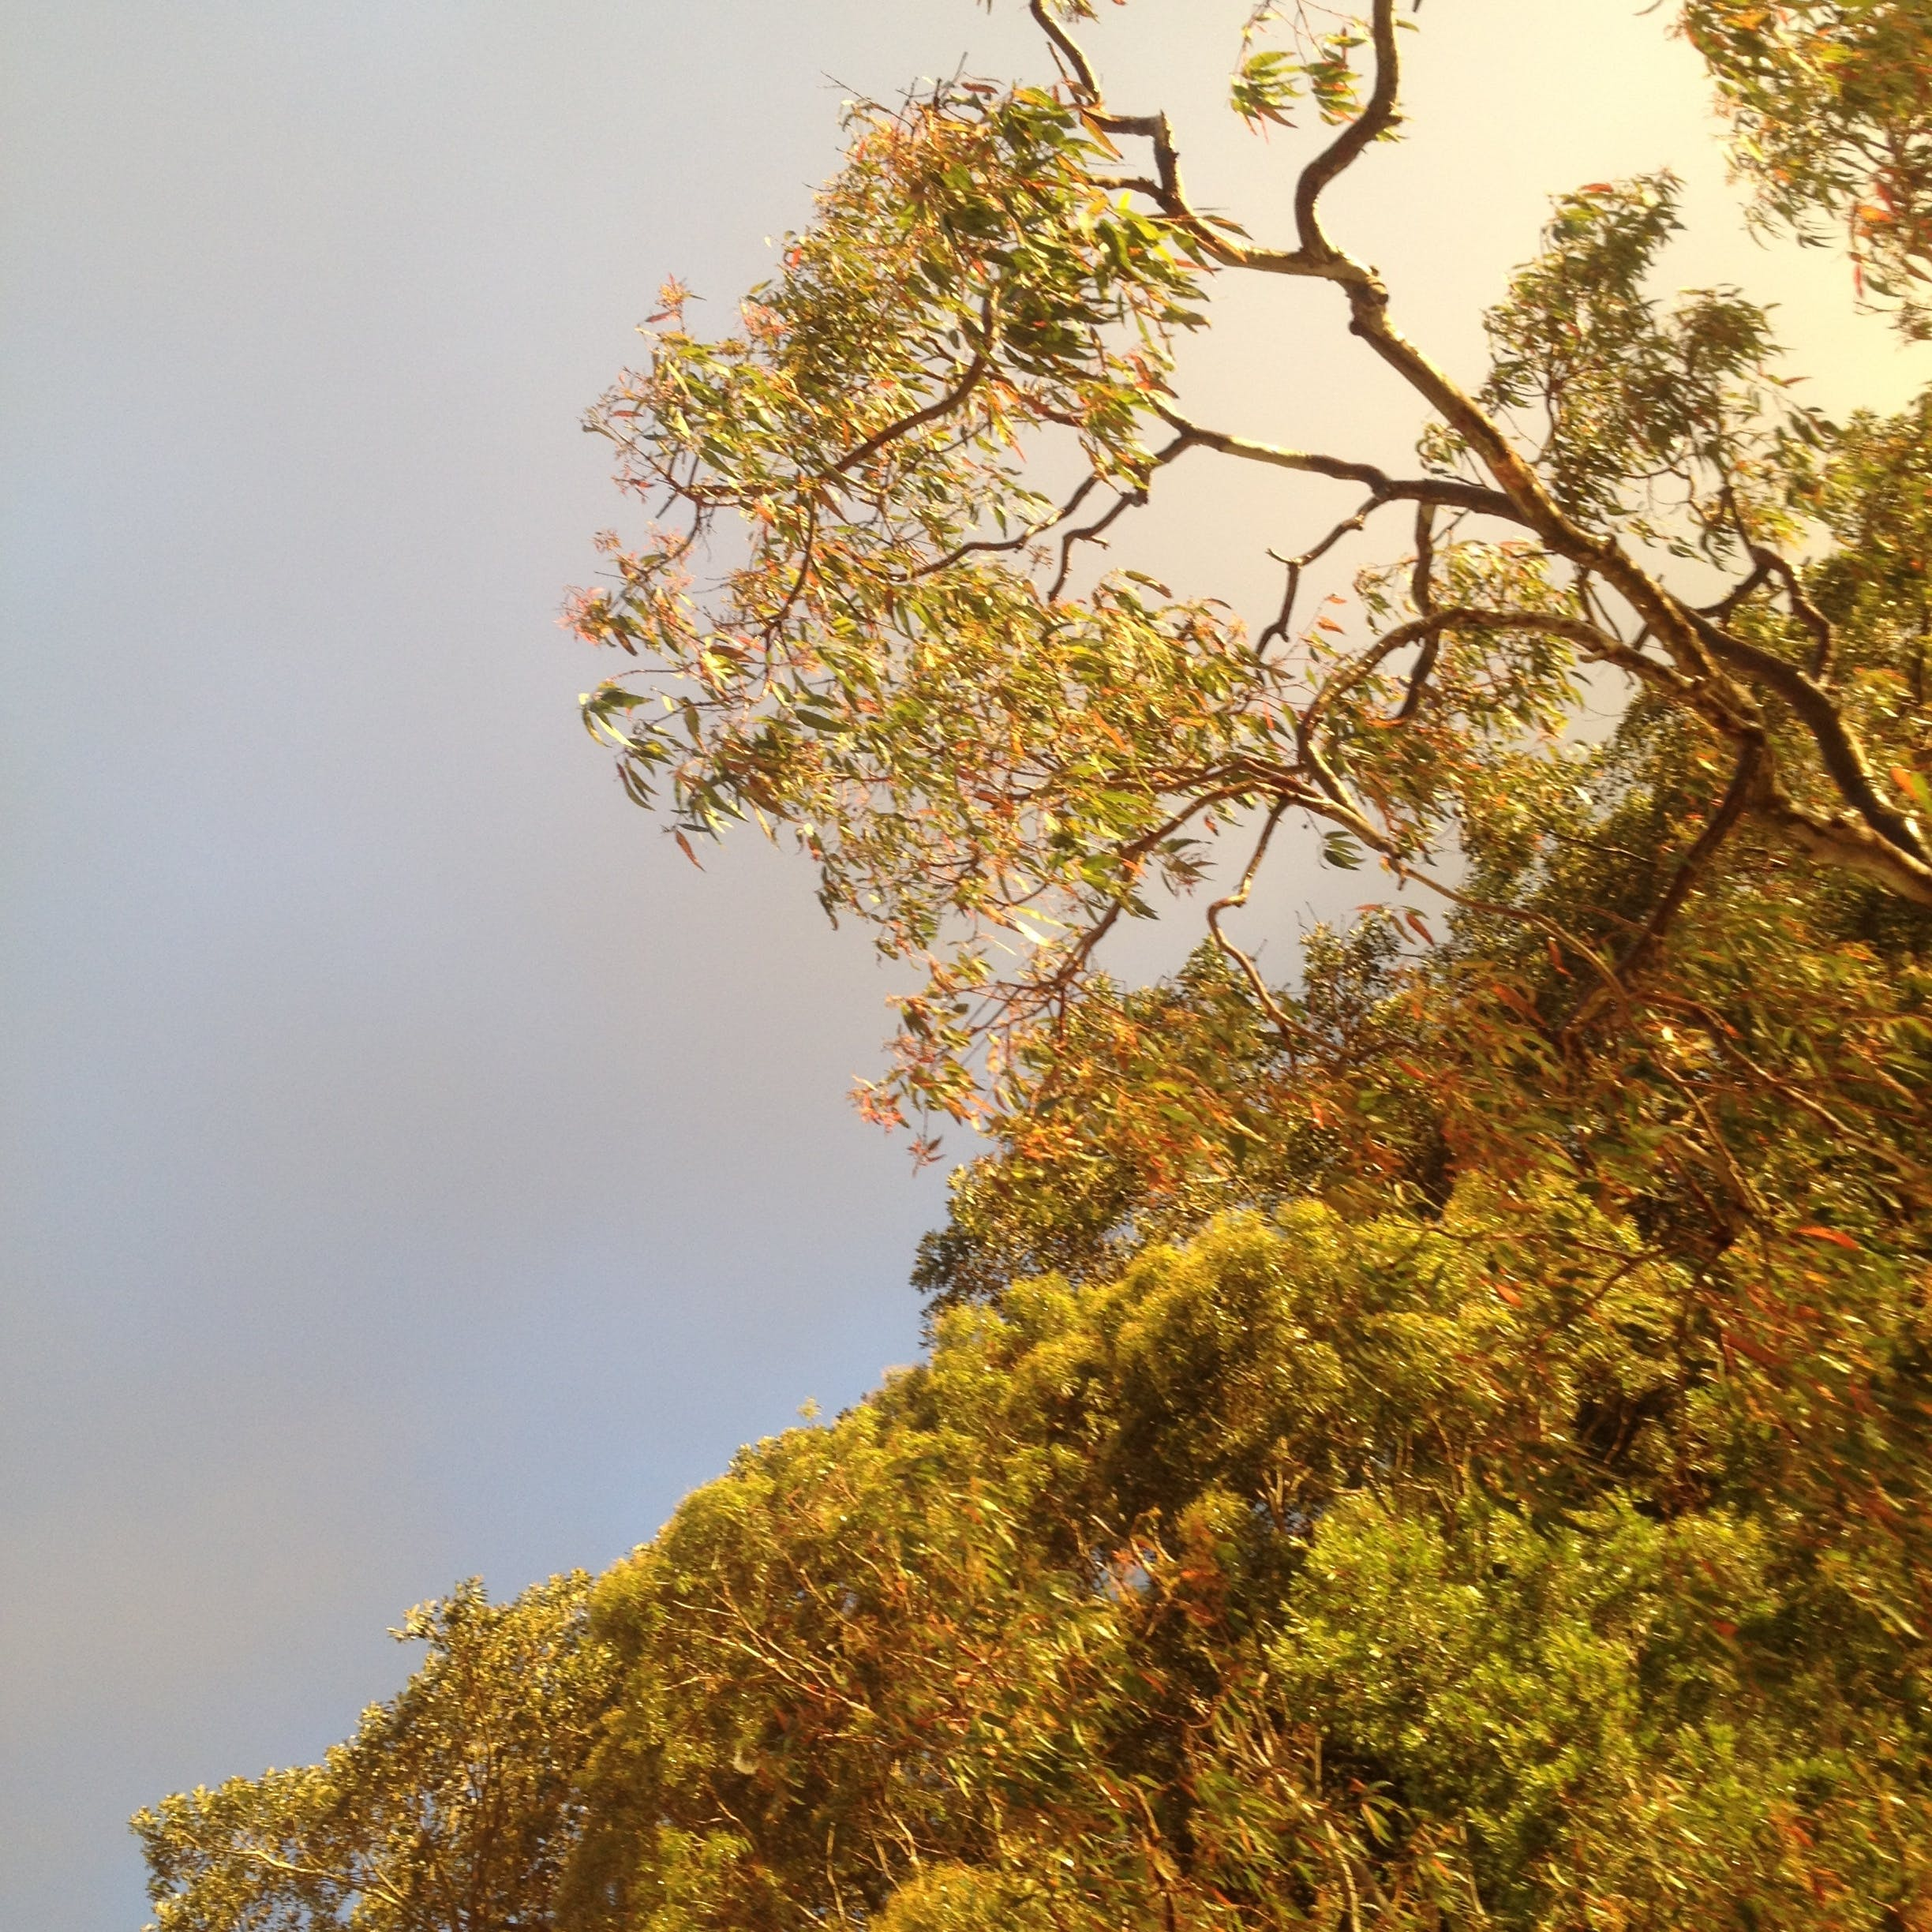 Green Leaf Tree With Cloudy Sky